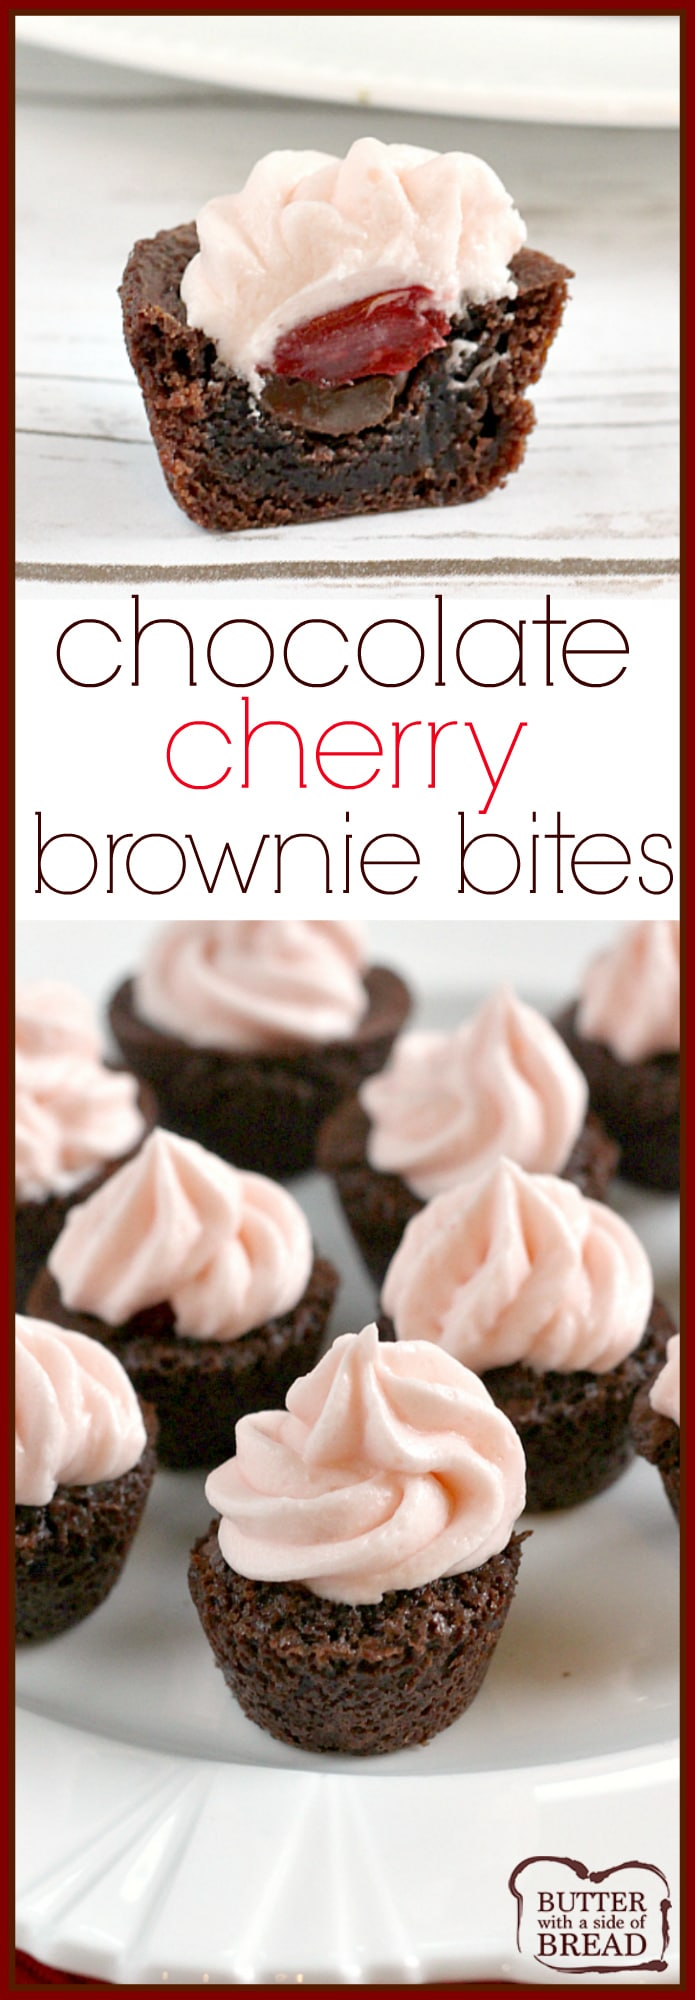 Chocolate Cherry Brownie Bites are mini brownies filled with chocolate chips, maraschino cherries and then topped with a cherry flavored cream cheese frosting!